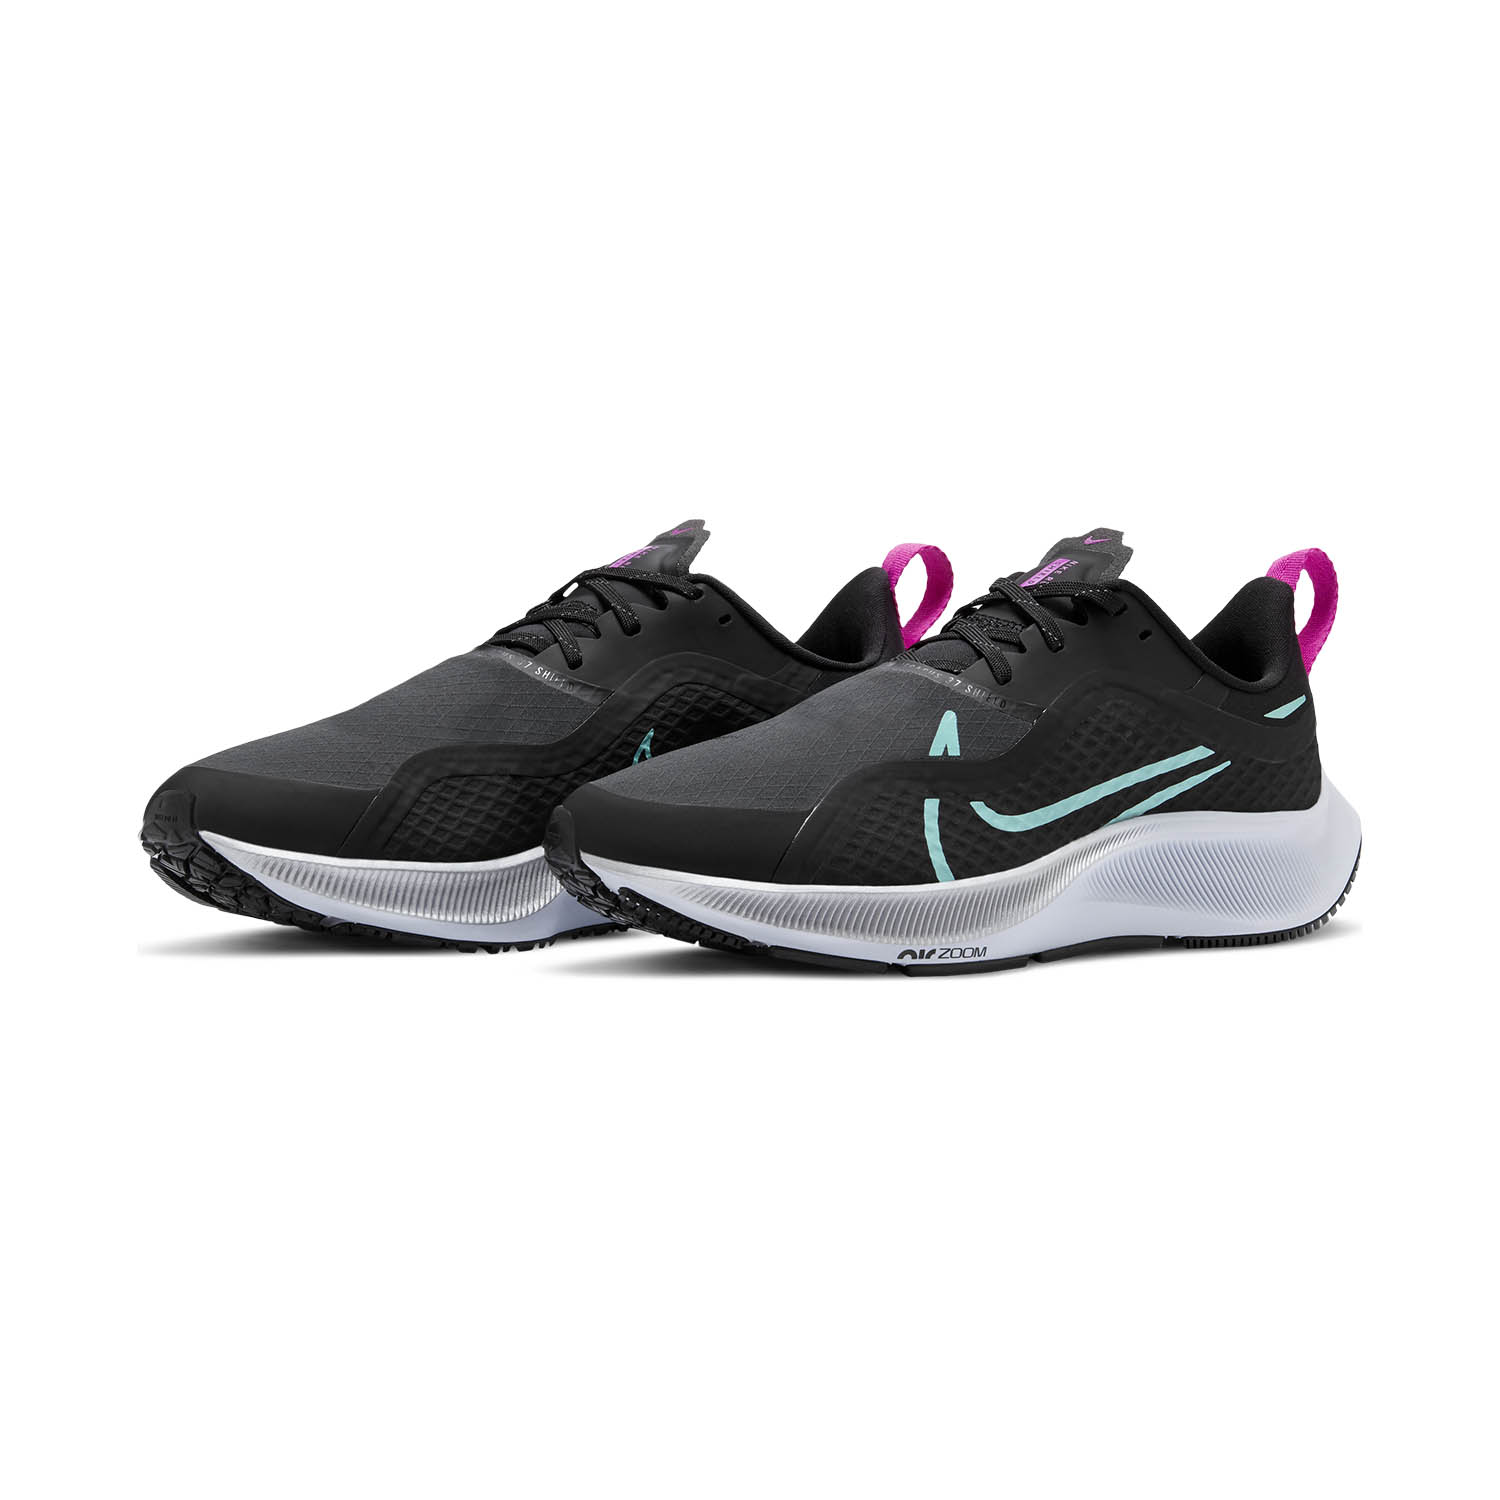 Nike Air Zoom Pegasus 37 Shield - Black/Aurora Green/Dark Smoke Grey